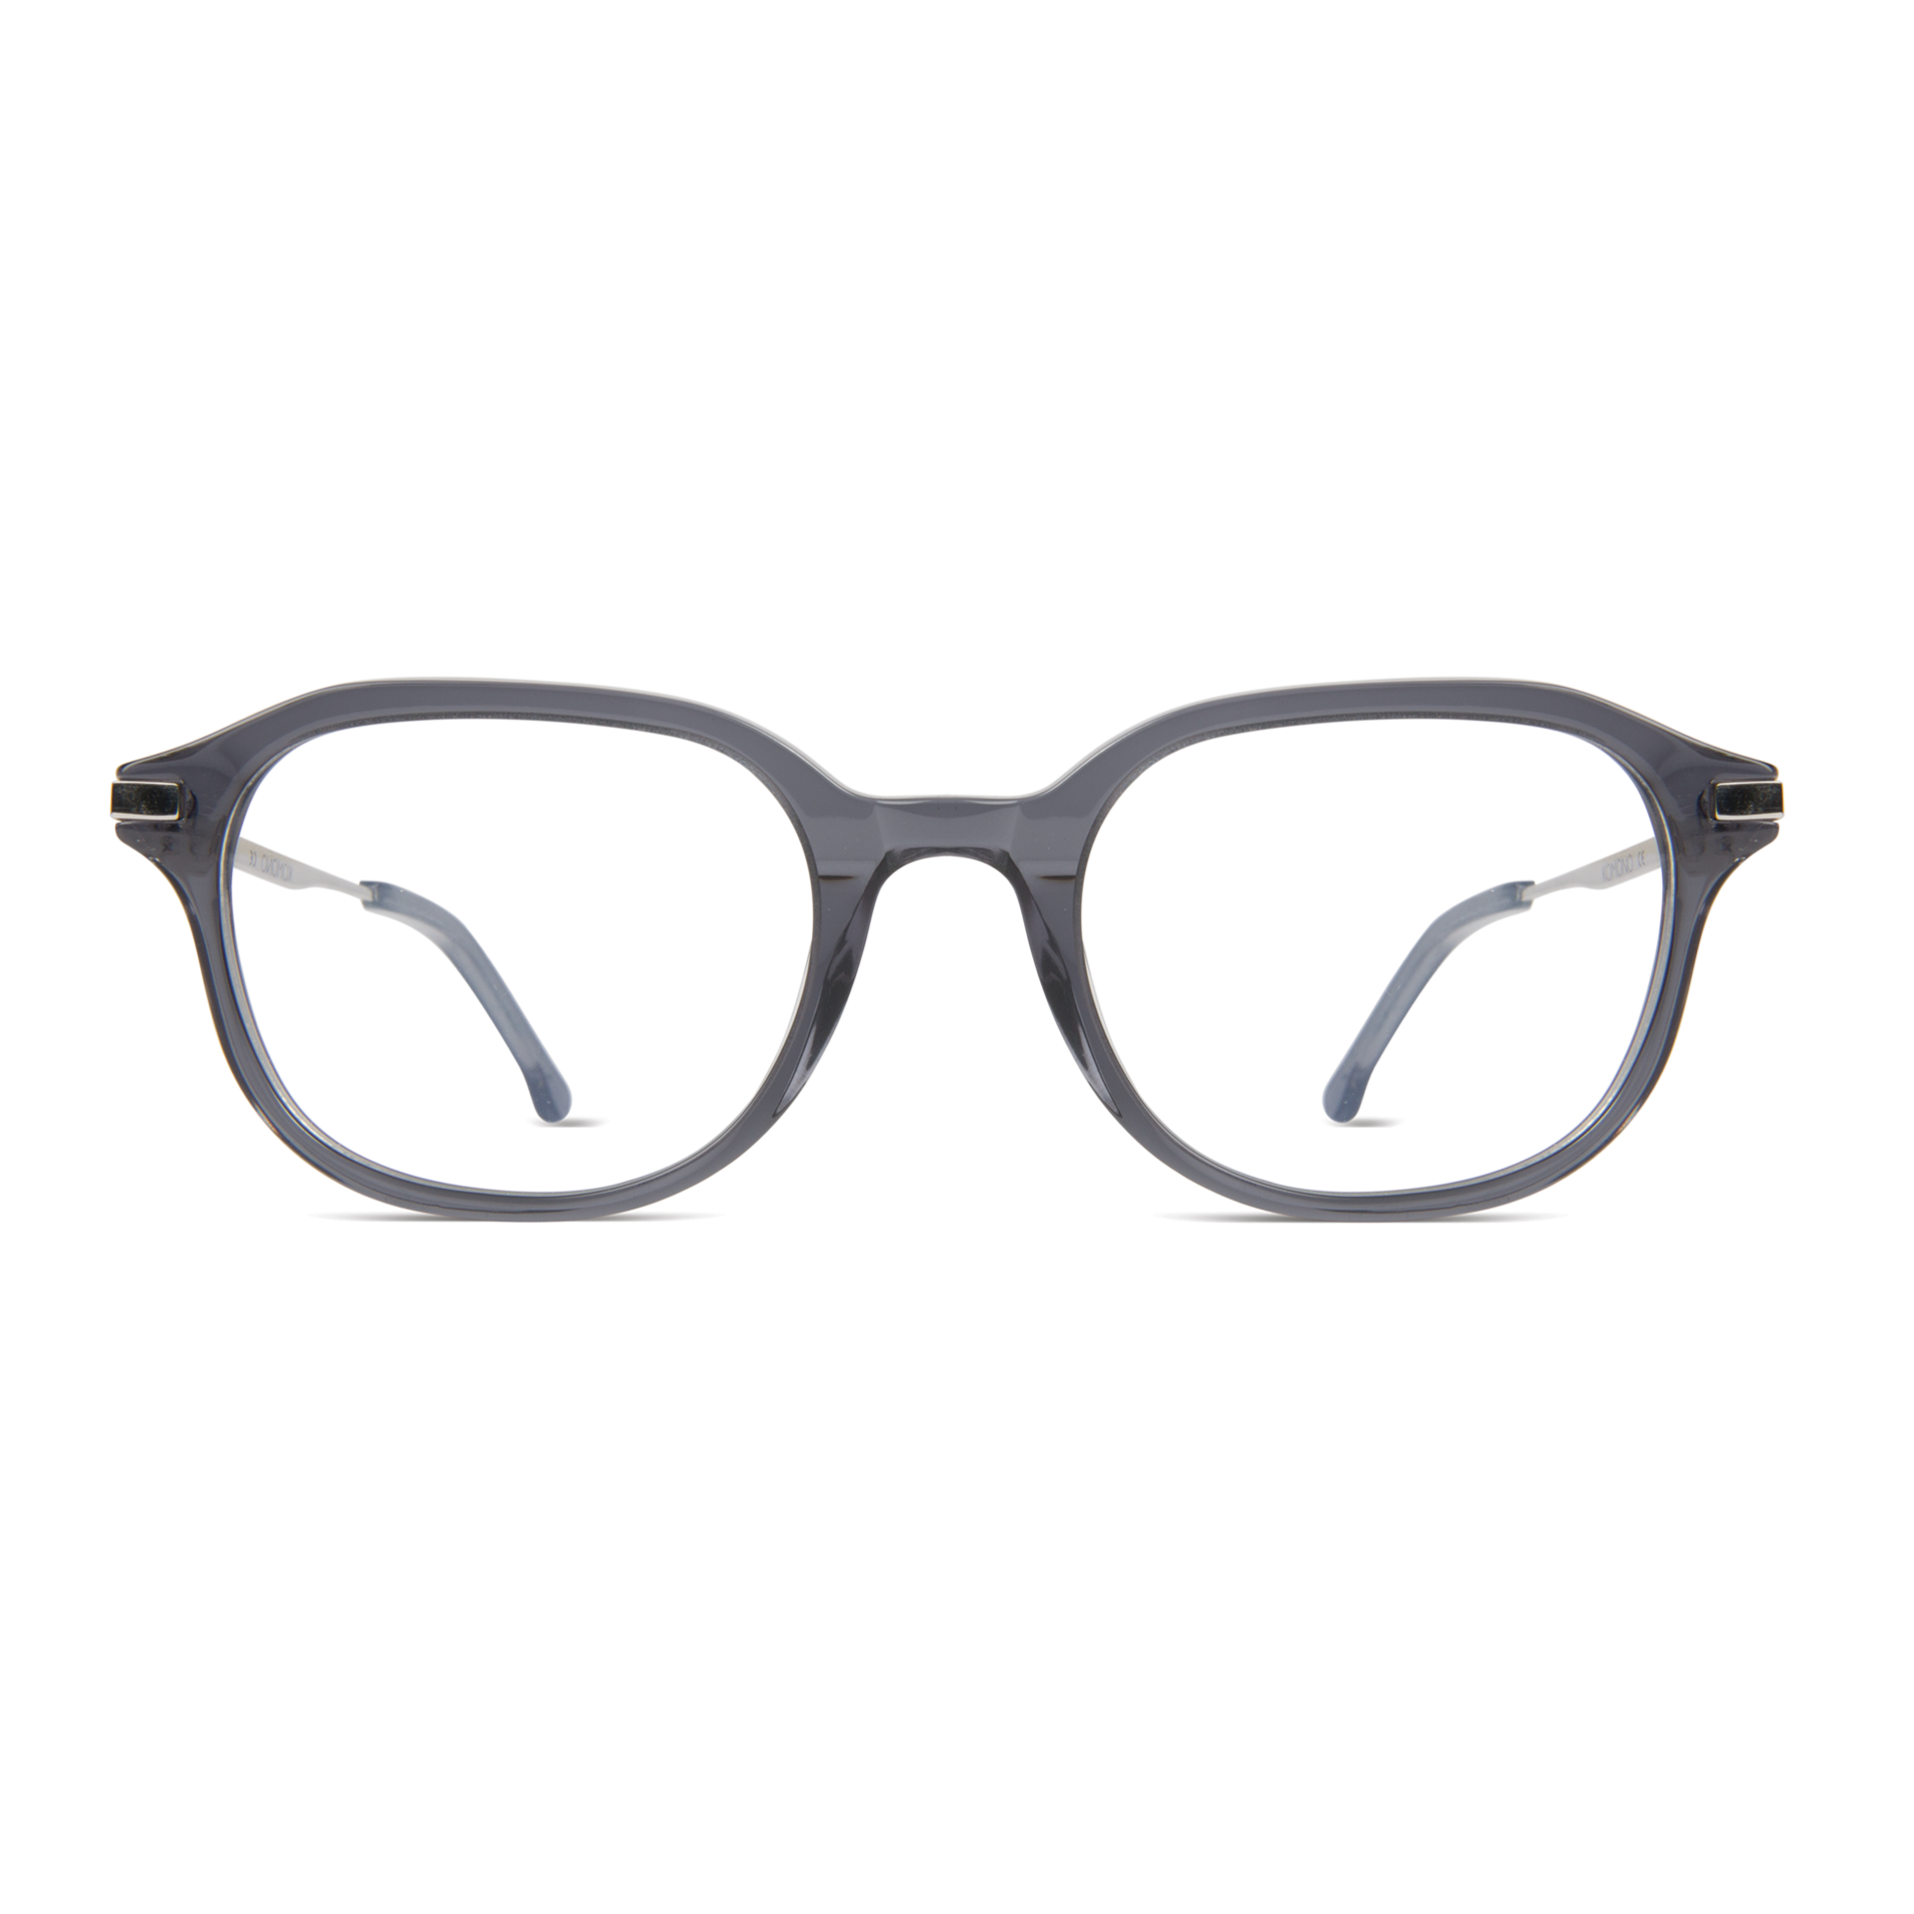 COLIN / GREY STONE SILVER / OPTICAL FRAMES